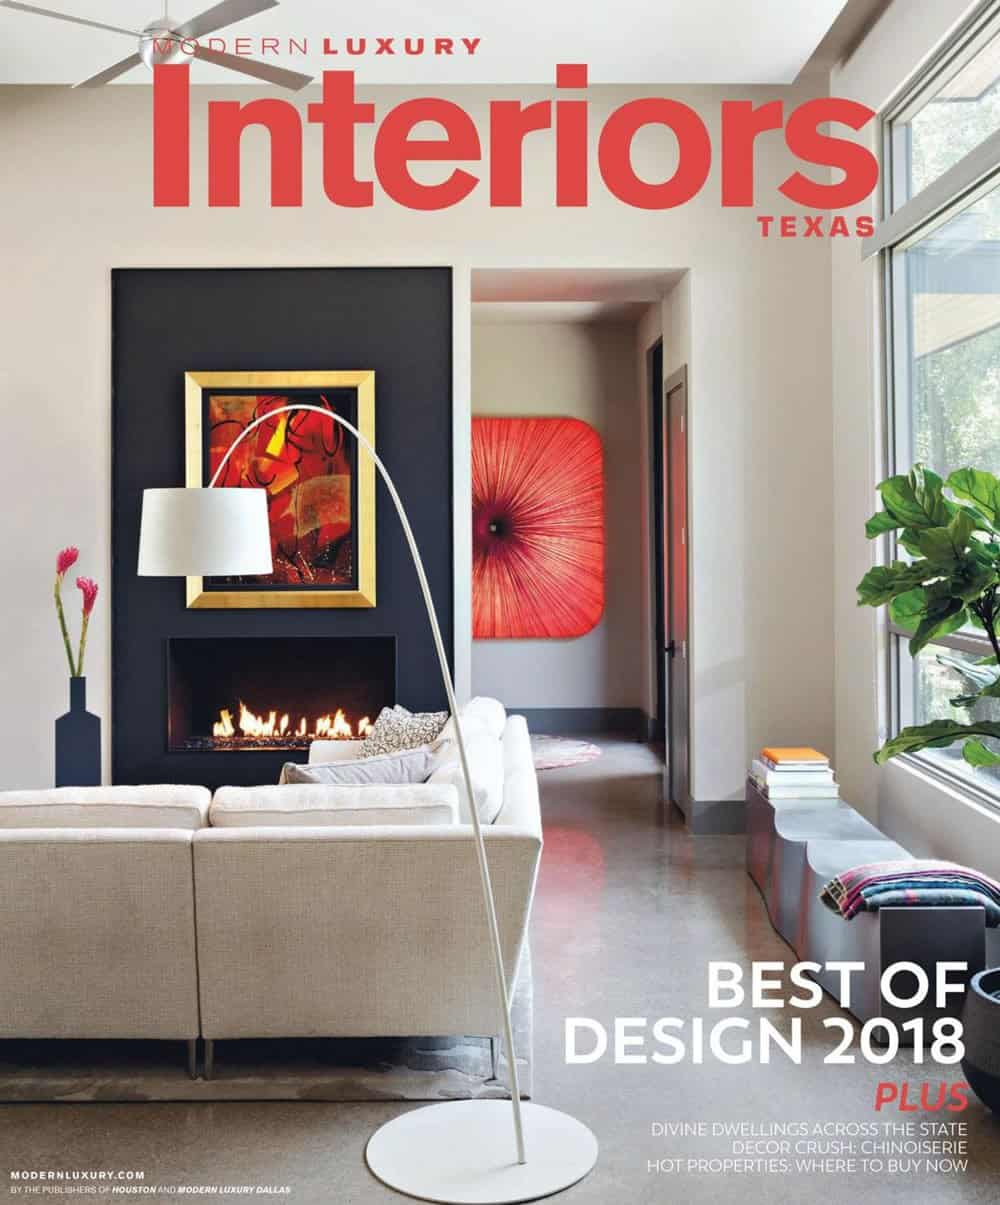 Modern Luxury Interiors Texas magazine cover for January 2018 edition